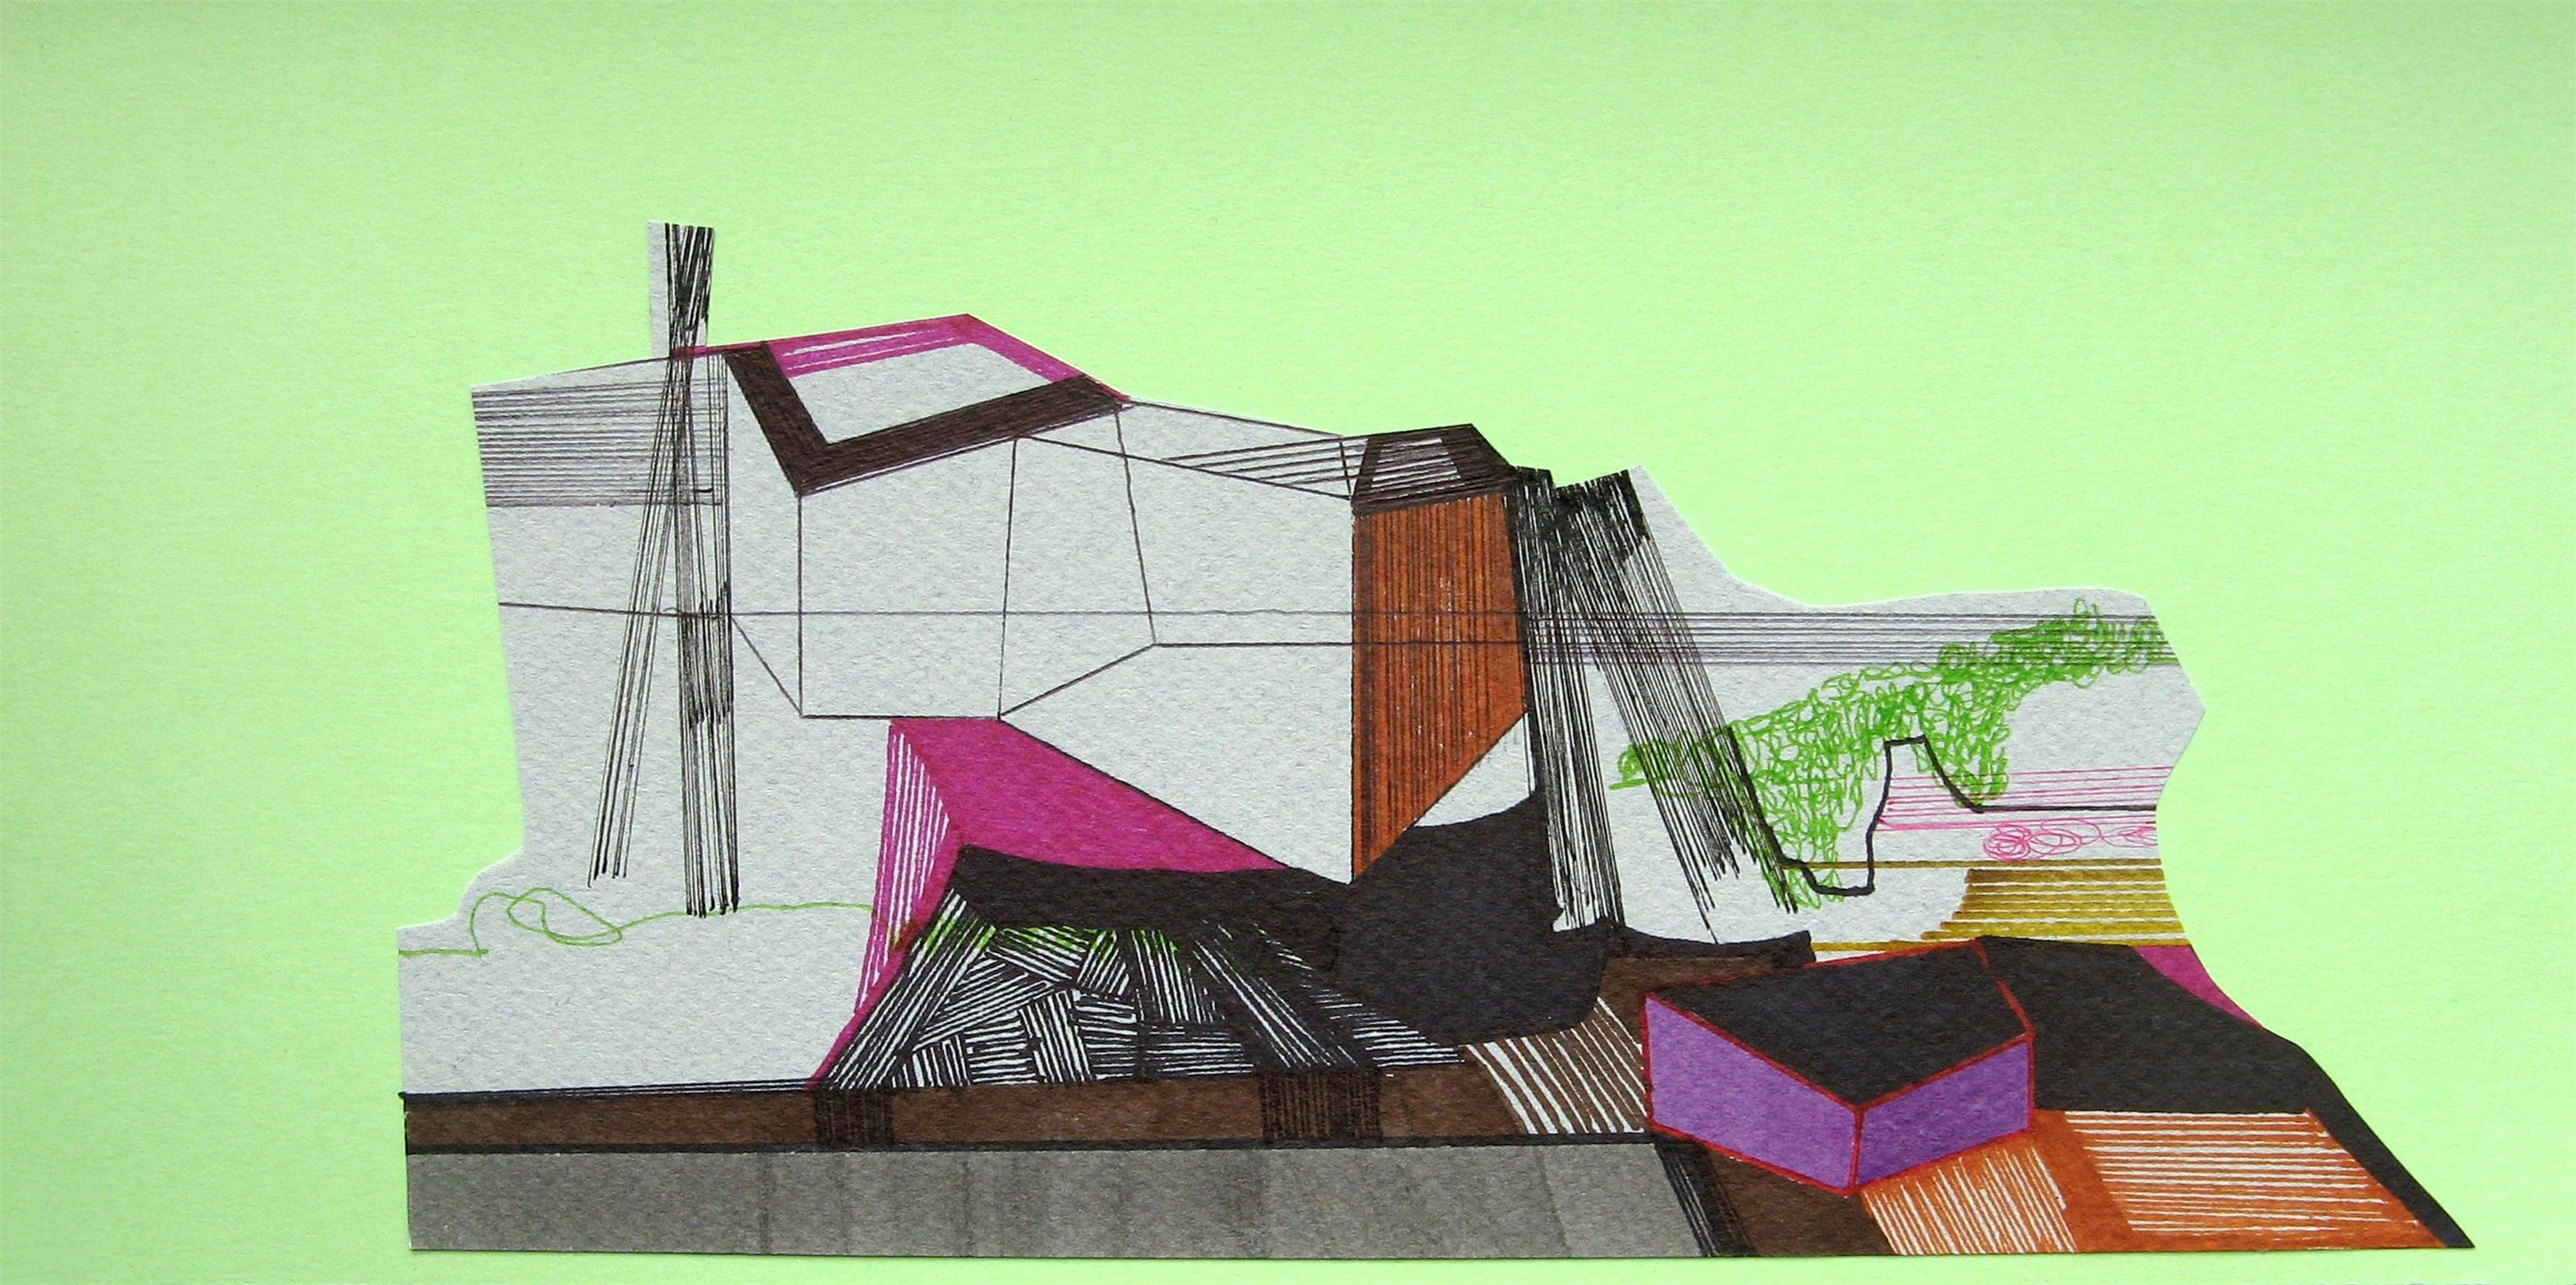 Casa de partida #18, original Geometric Collage Drawing and Illustration by Ana Pais Oliveira